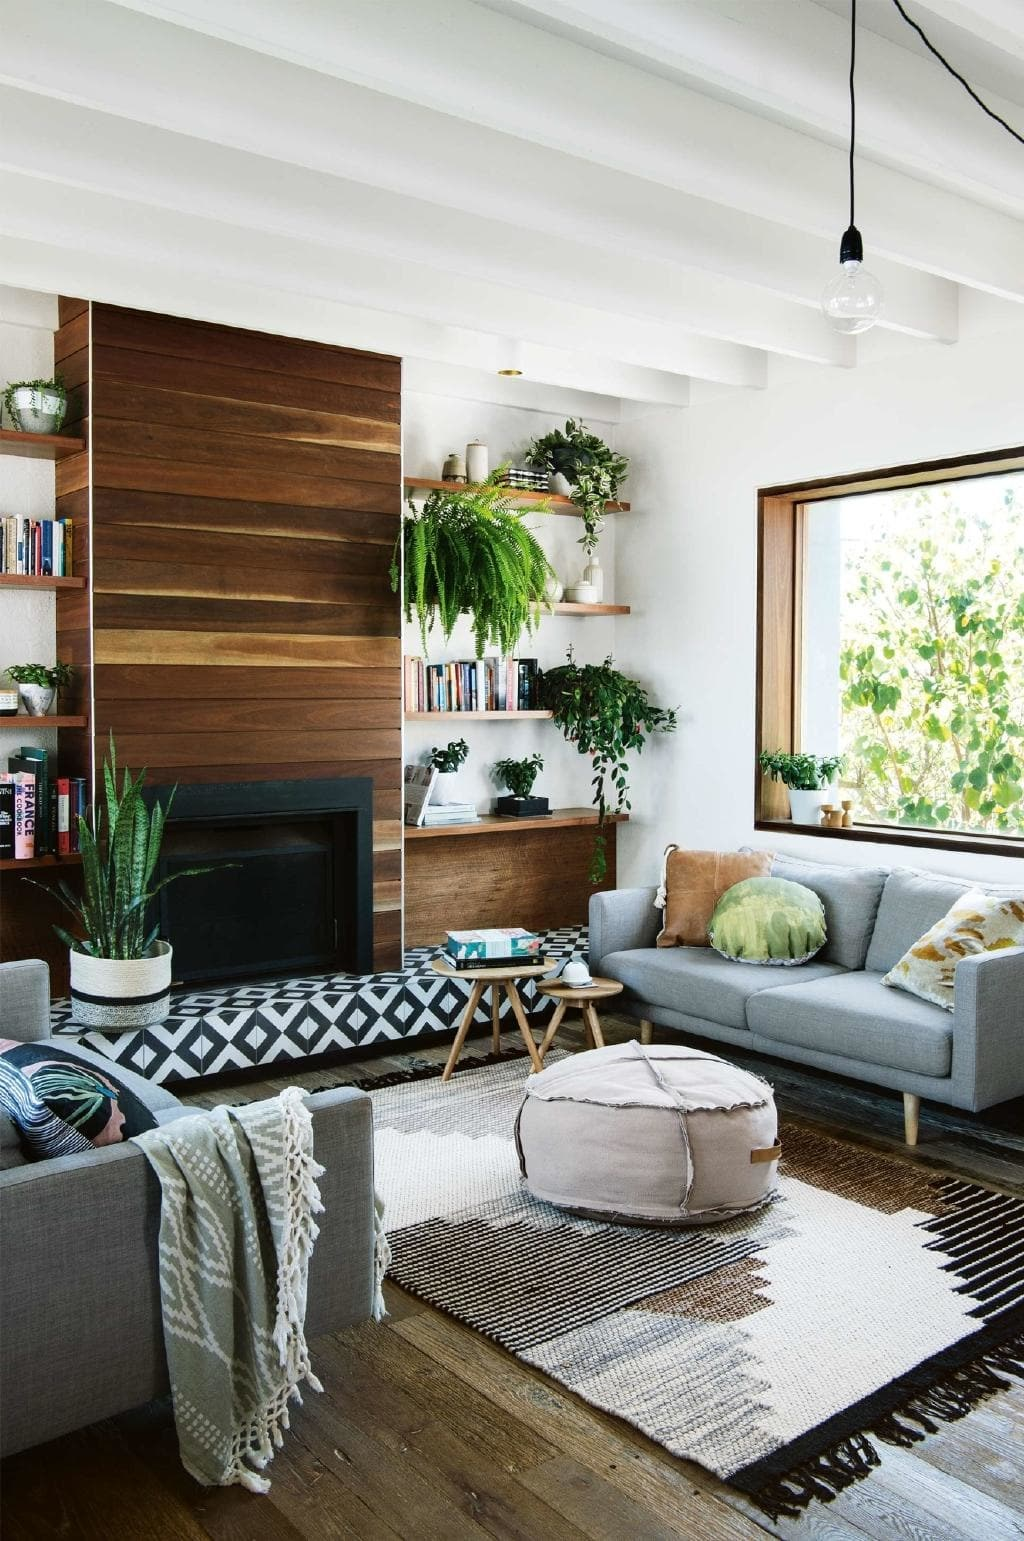 """<P>**TO ANCHOR A FIREPLACE**<P> <P>Installing a new fireplace in an existing home can result in a pair of awkward spaces on either side of the chimney. In this [textured, coastal home](https://www.homestolove.com.au/how-to-bring-coastal-textures-into-the-home-18270